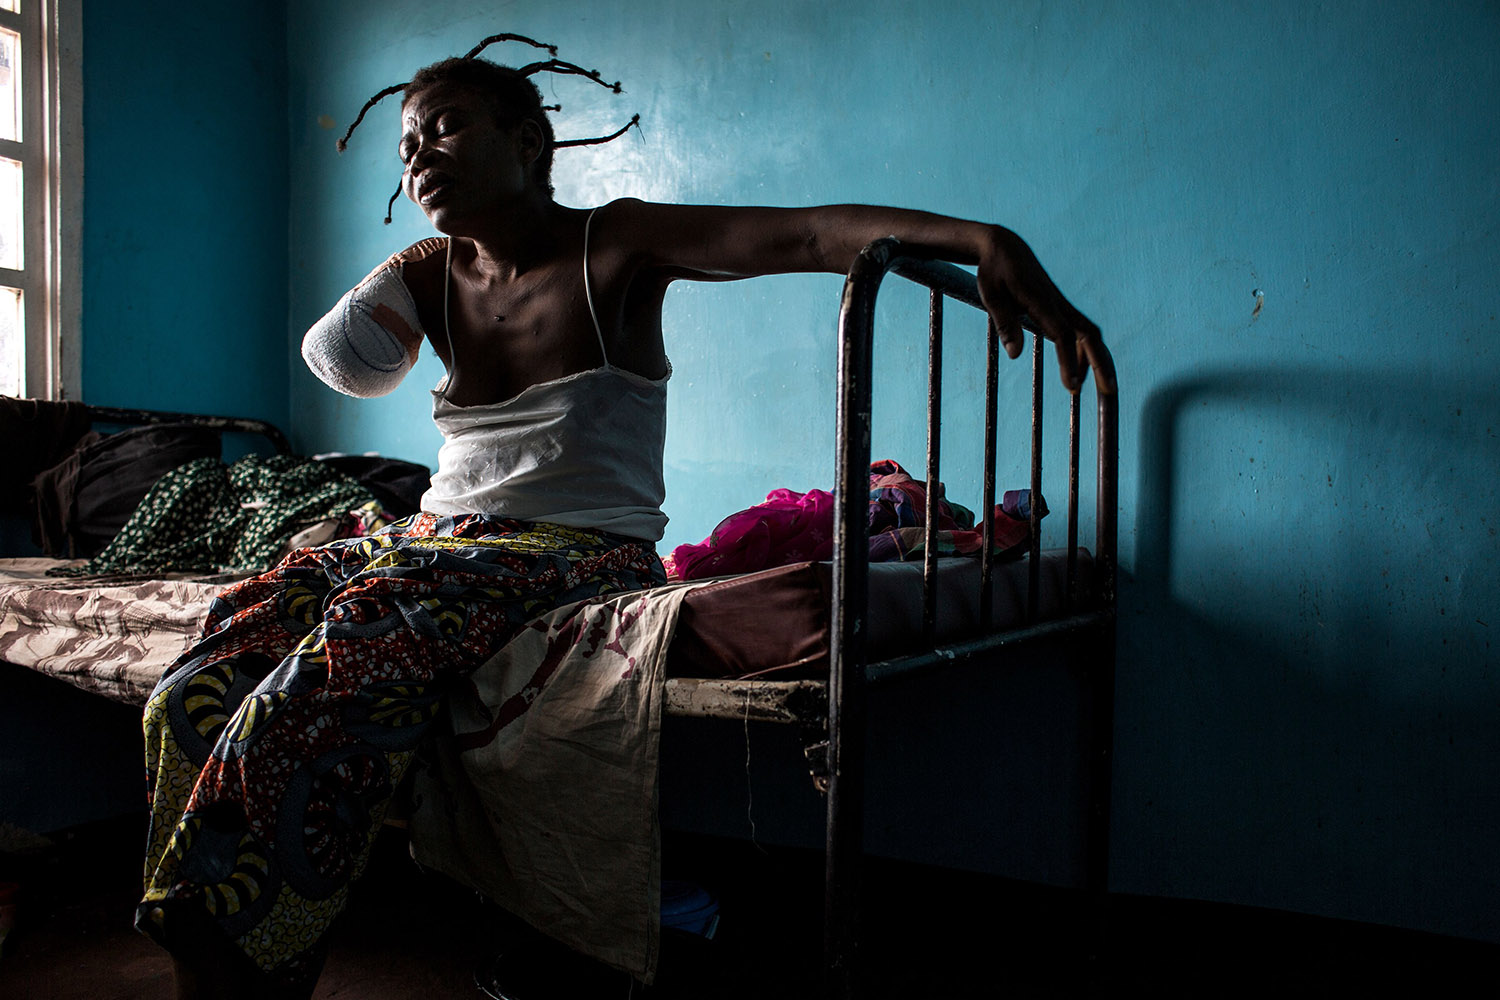 A Congolese woman, who had her arm amputated after a gun shot wound, sits on her bed on Oct. 23, in Tshikapa, a city in the Democratic Republic of the Congo's Kasai district (John Wessels/AFP/Getty Images)